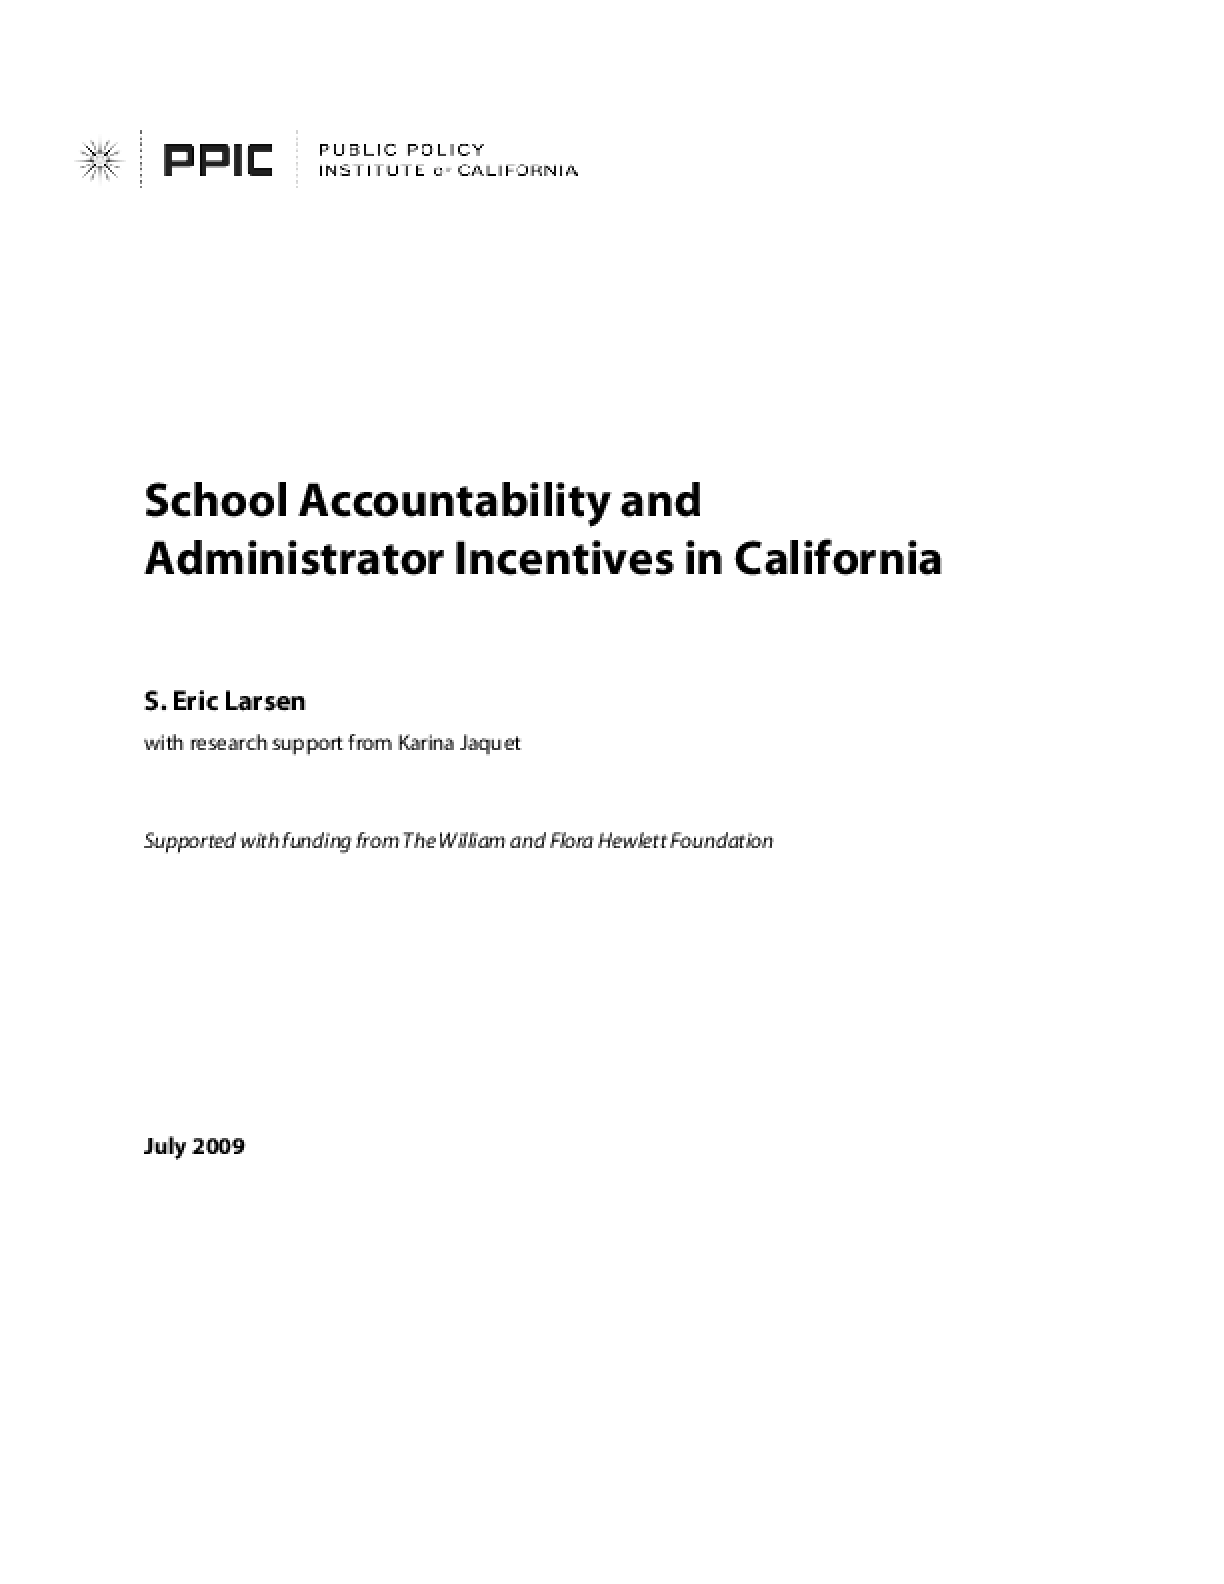 School Accountability and Administrator Incentives in California